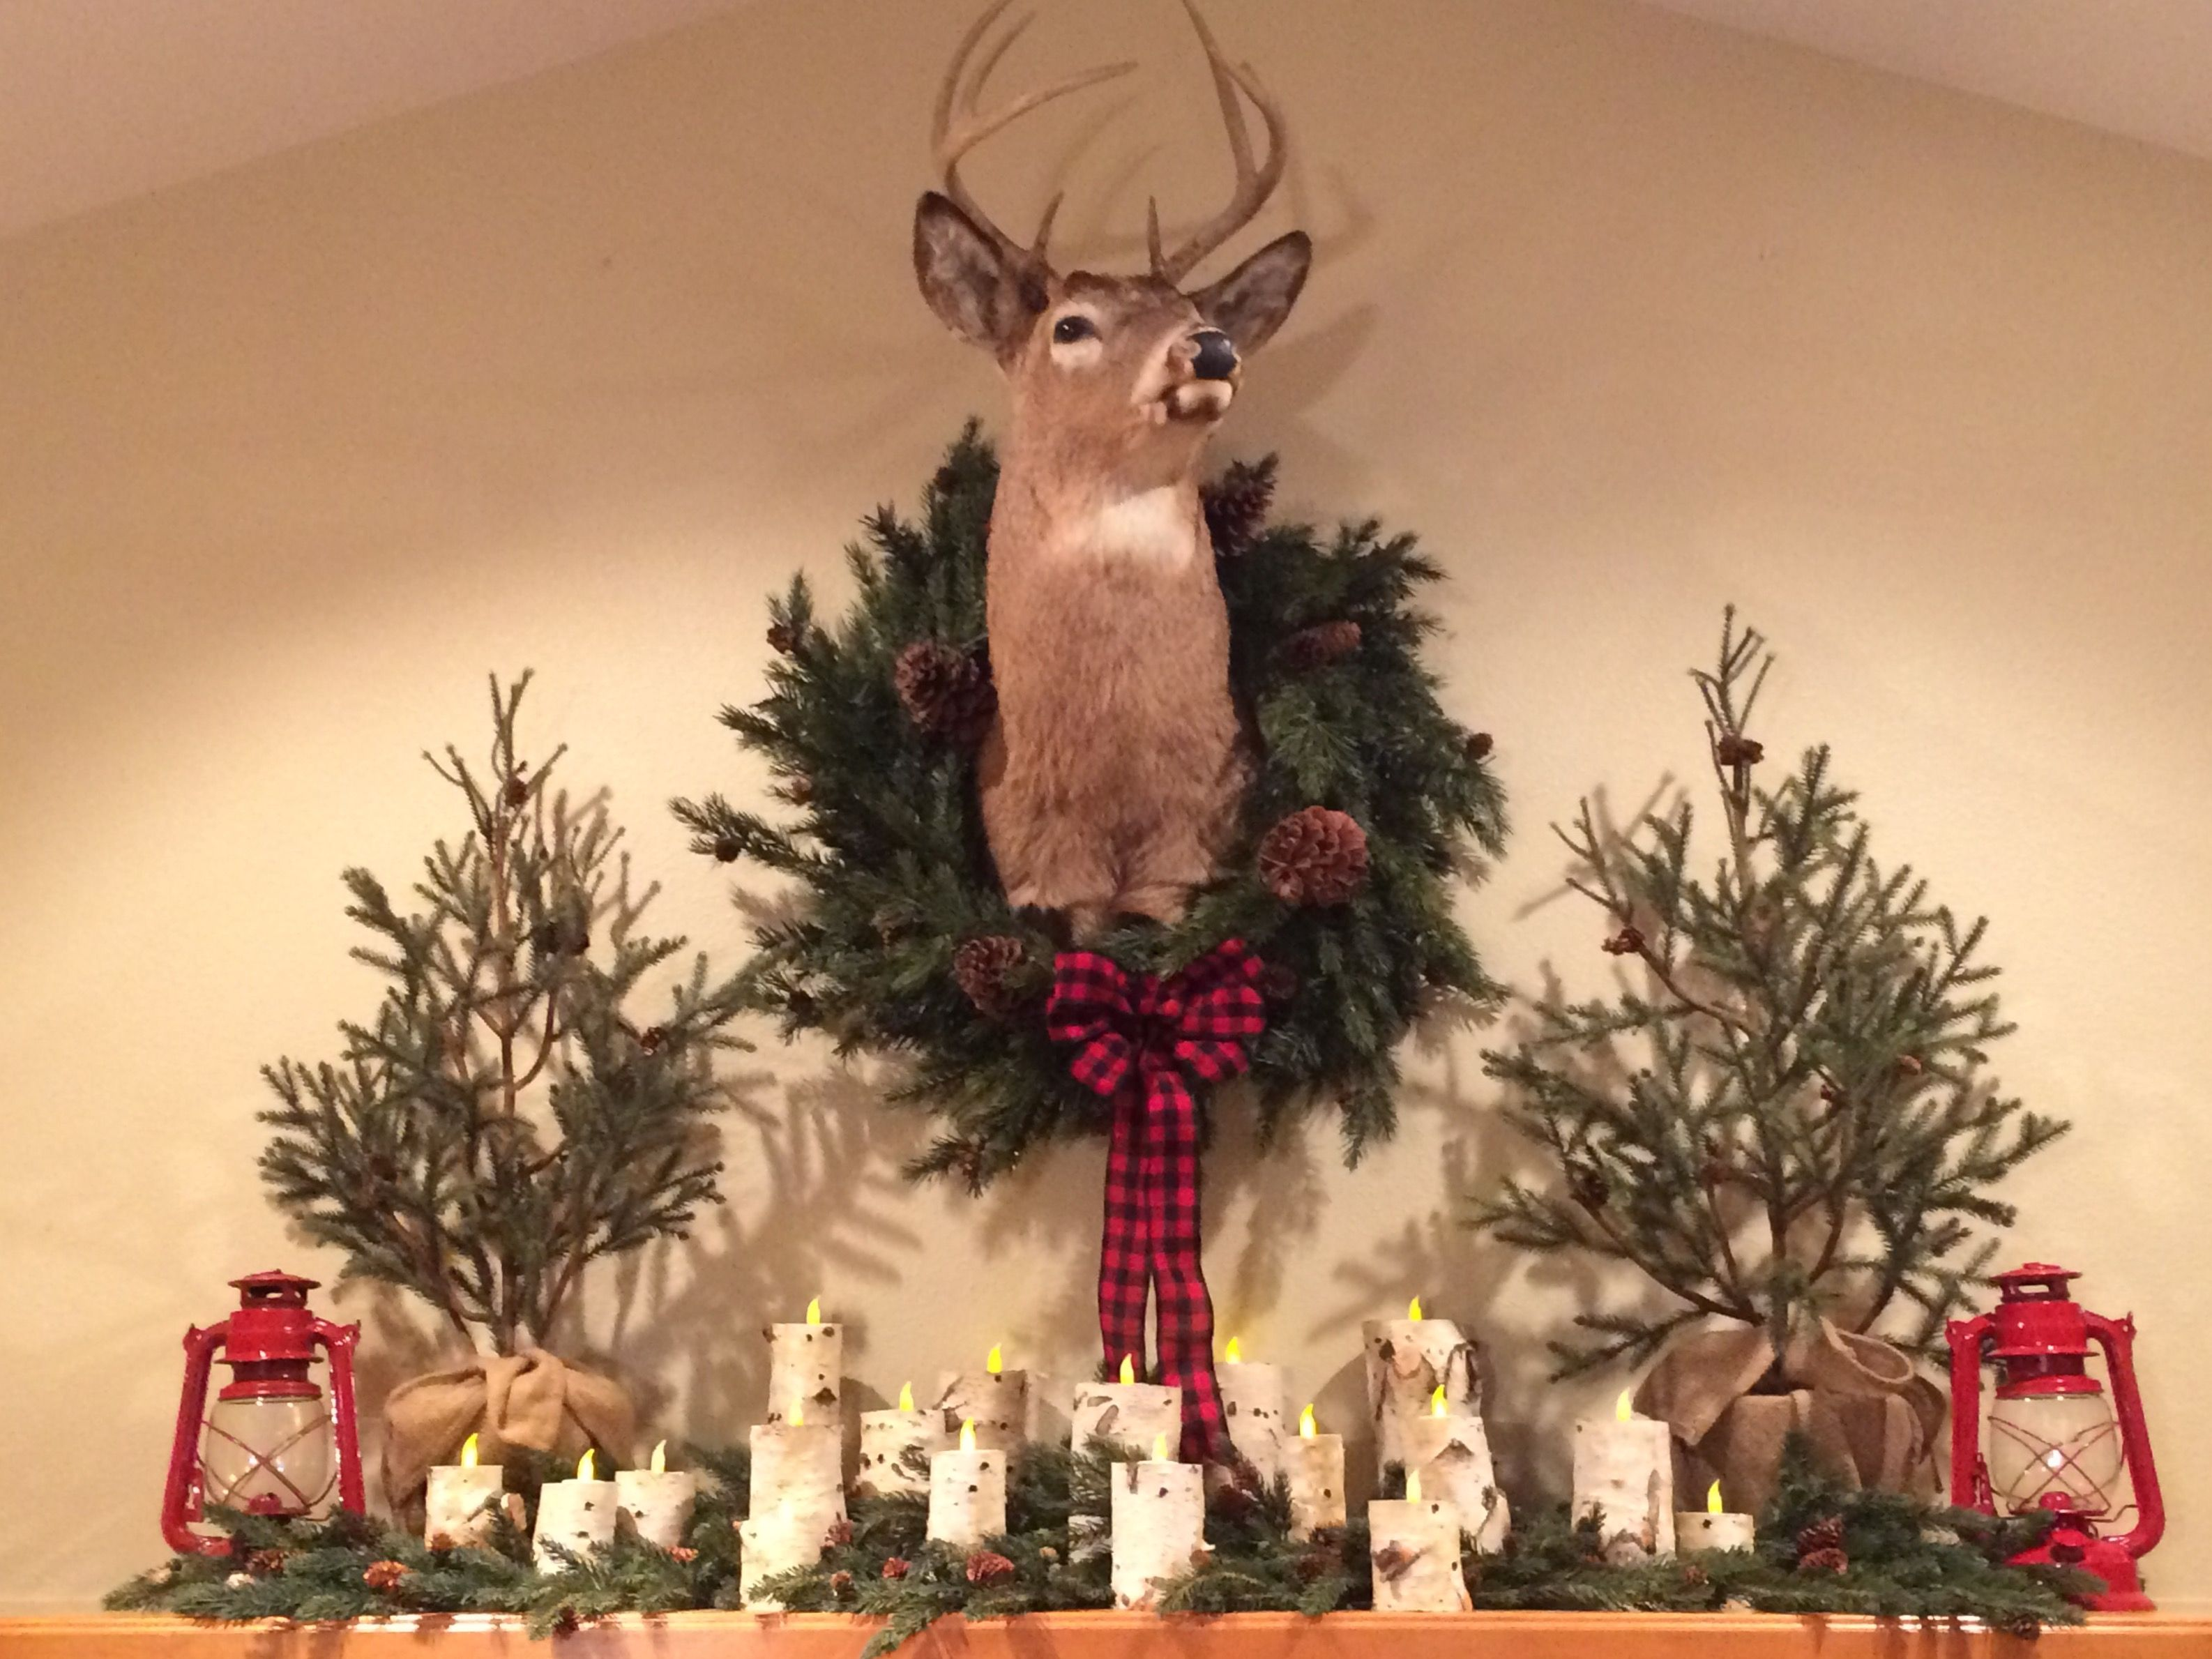 Christmas Wreath With Deer Antlers